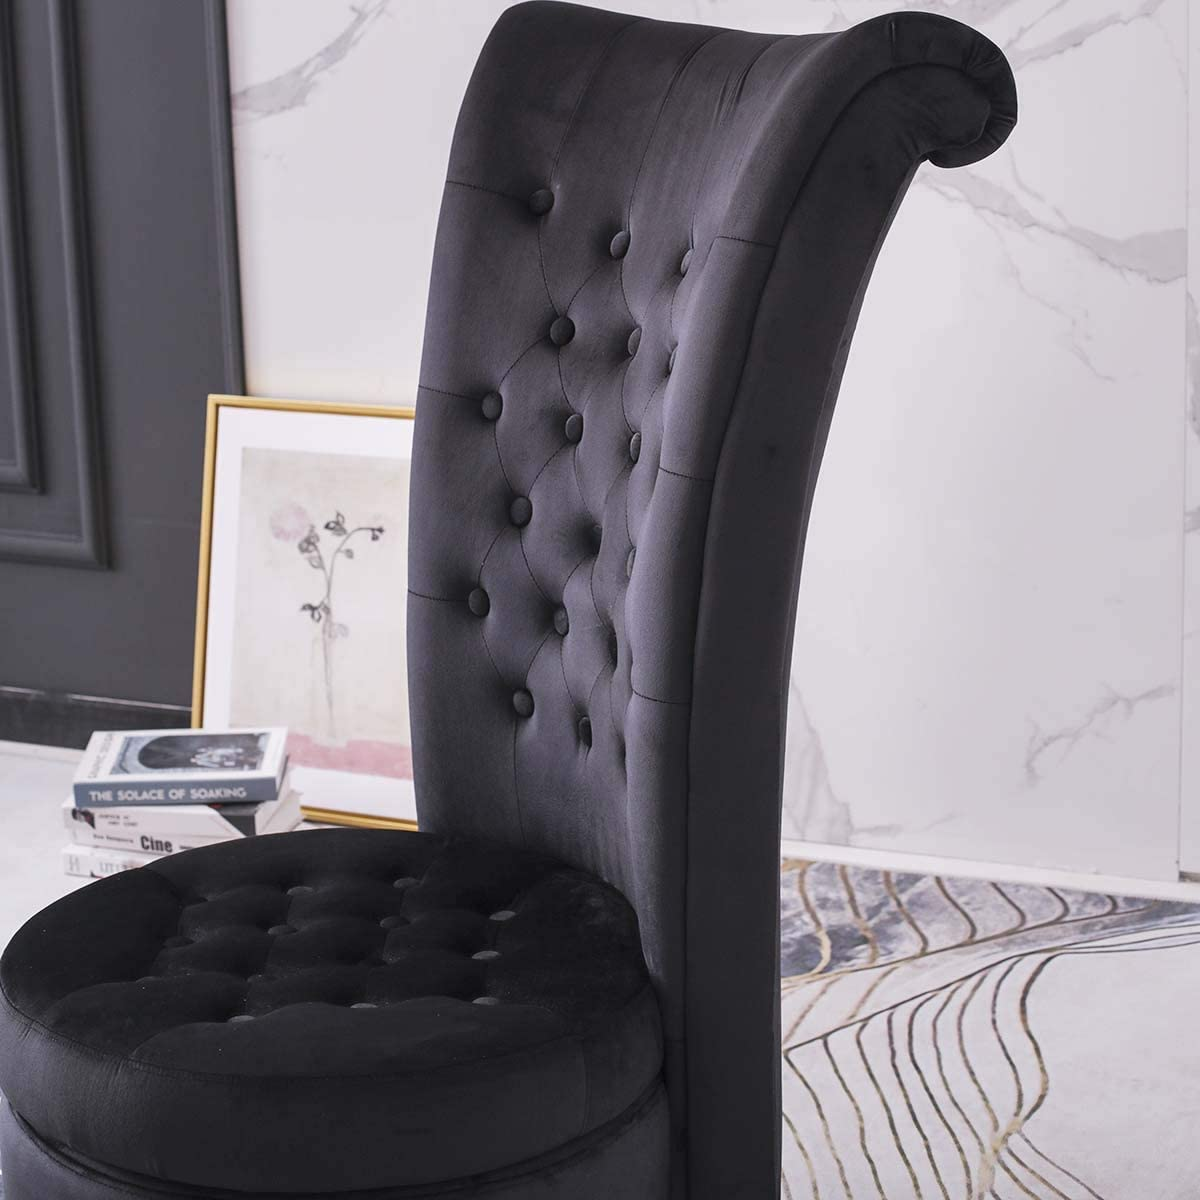 Hironpal Grey Velvet Accent Chair High Back with Storage Occasion Chair Dressing Chair Throne Chair Fireside Chair with Orbicular Legs for Living Room, Bedroom Black